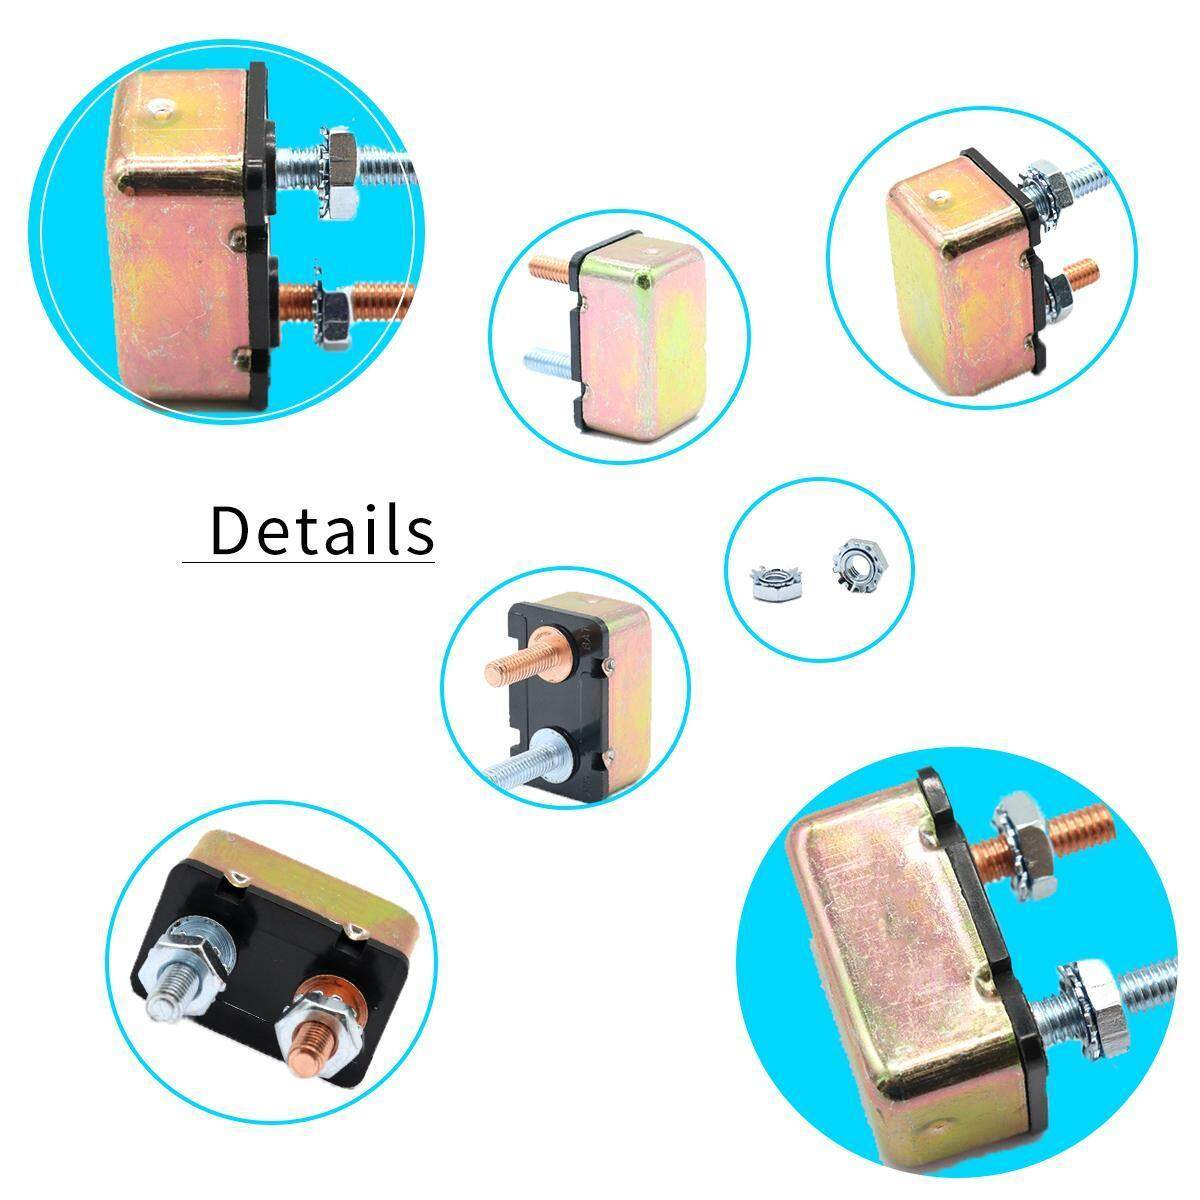 20a Auto Reset Circuit Breaker Stud Mounting Bracket Holder Bus Bar Breakers Mount Automotive A Perfect Protector Of Your Vehicle Which Can Effectively Prevent From Damage